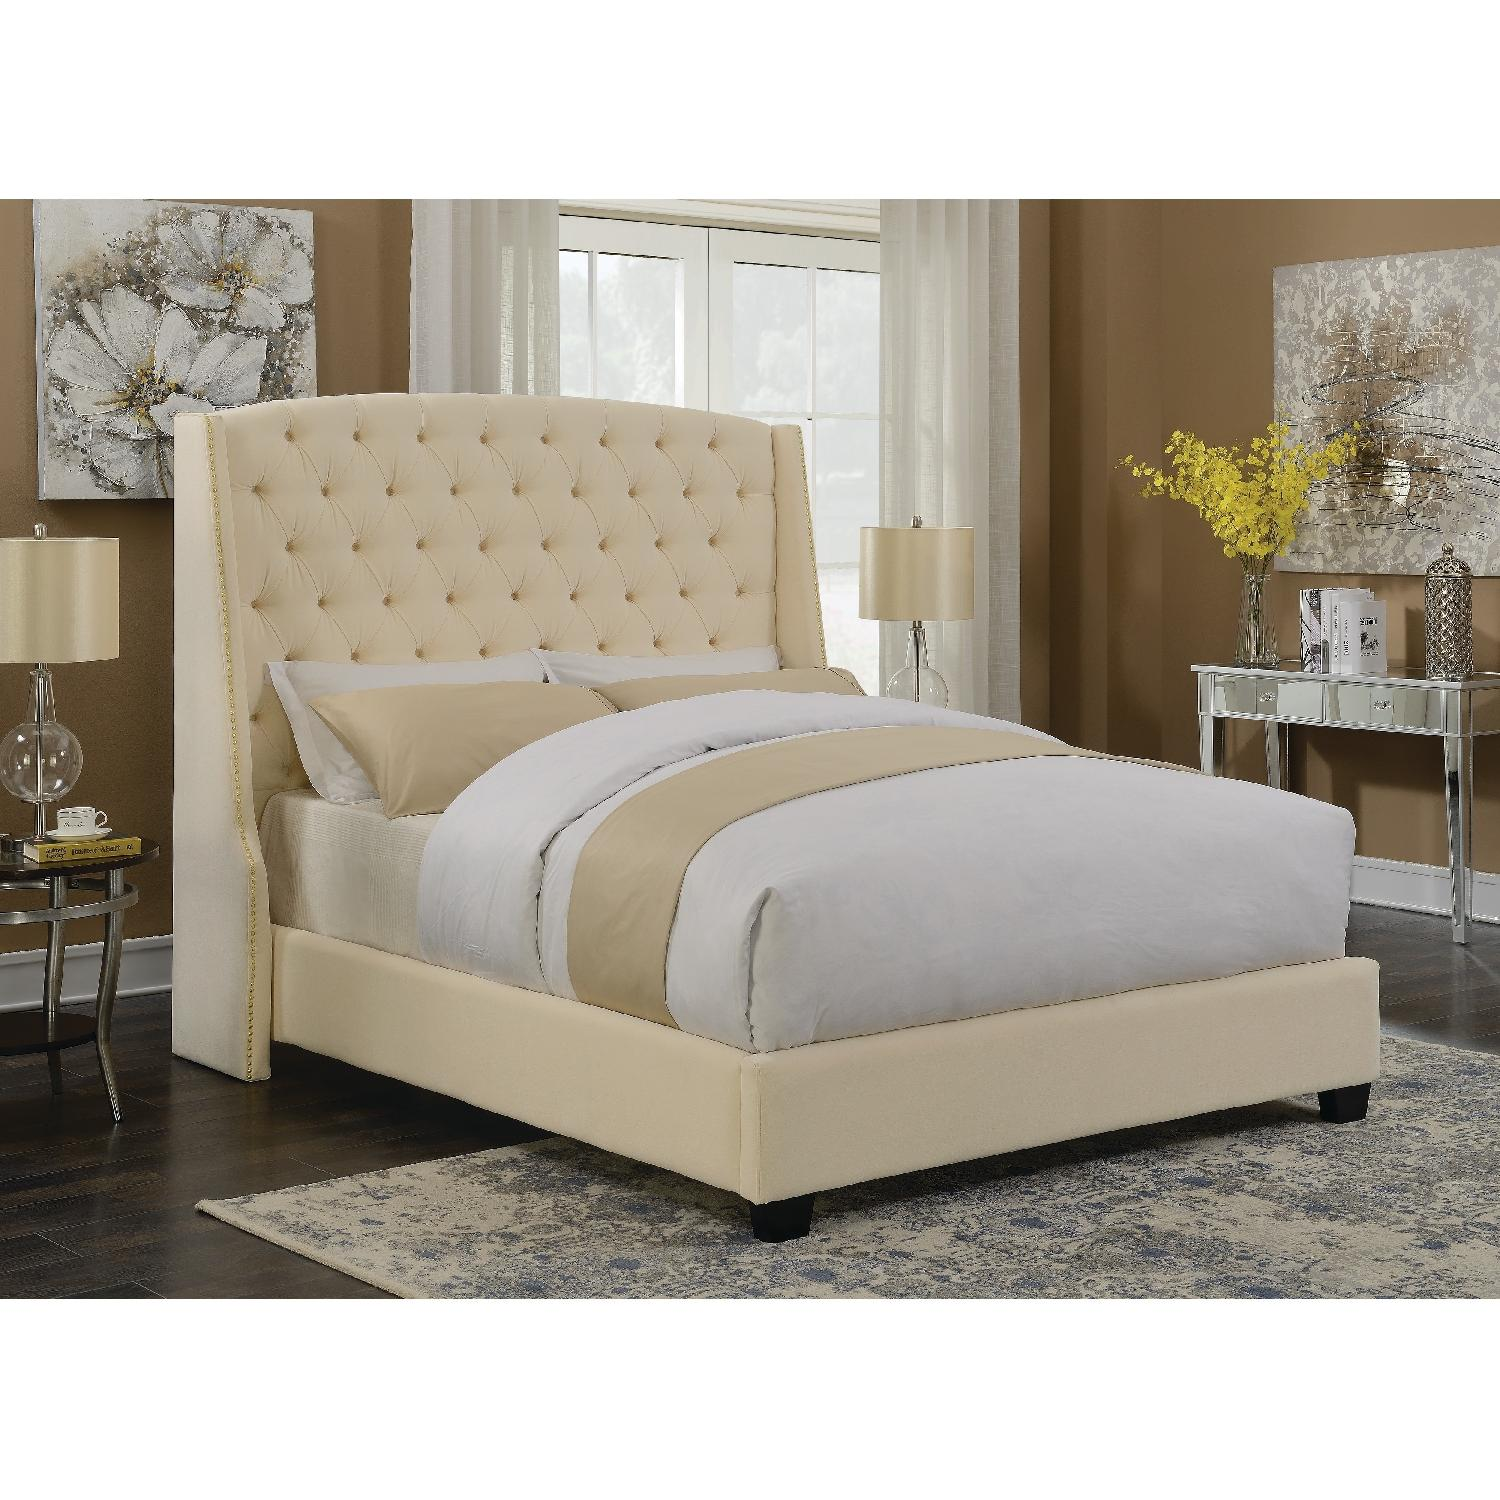 King Size Upholstered Bed in Cream Velvet Fabric-3